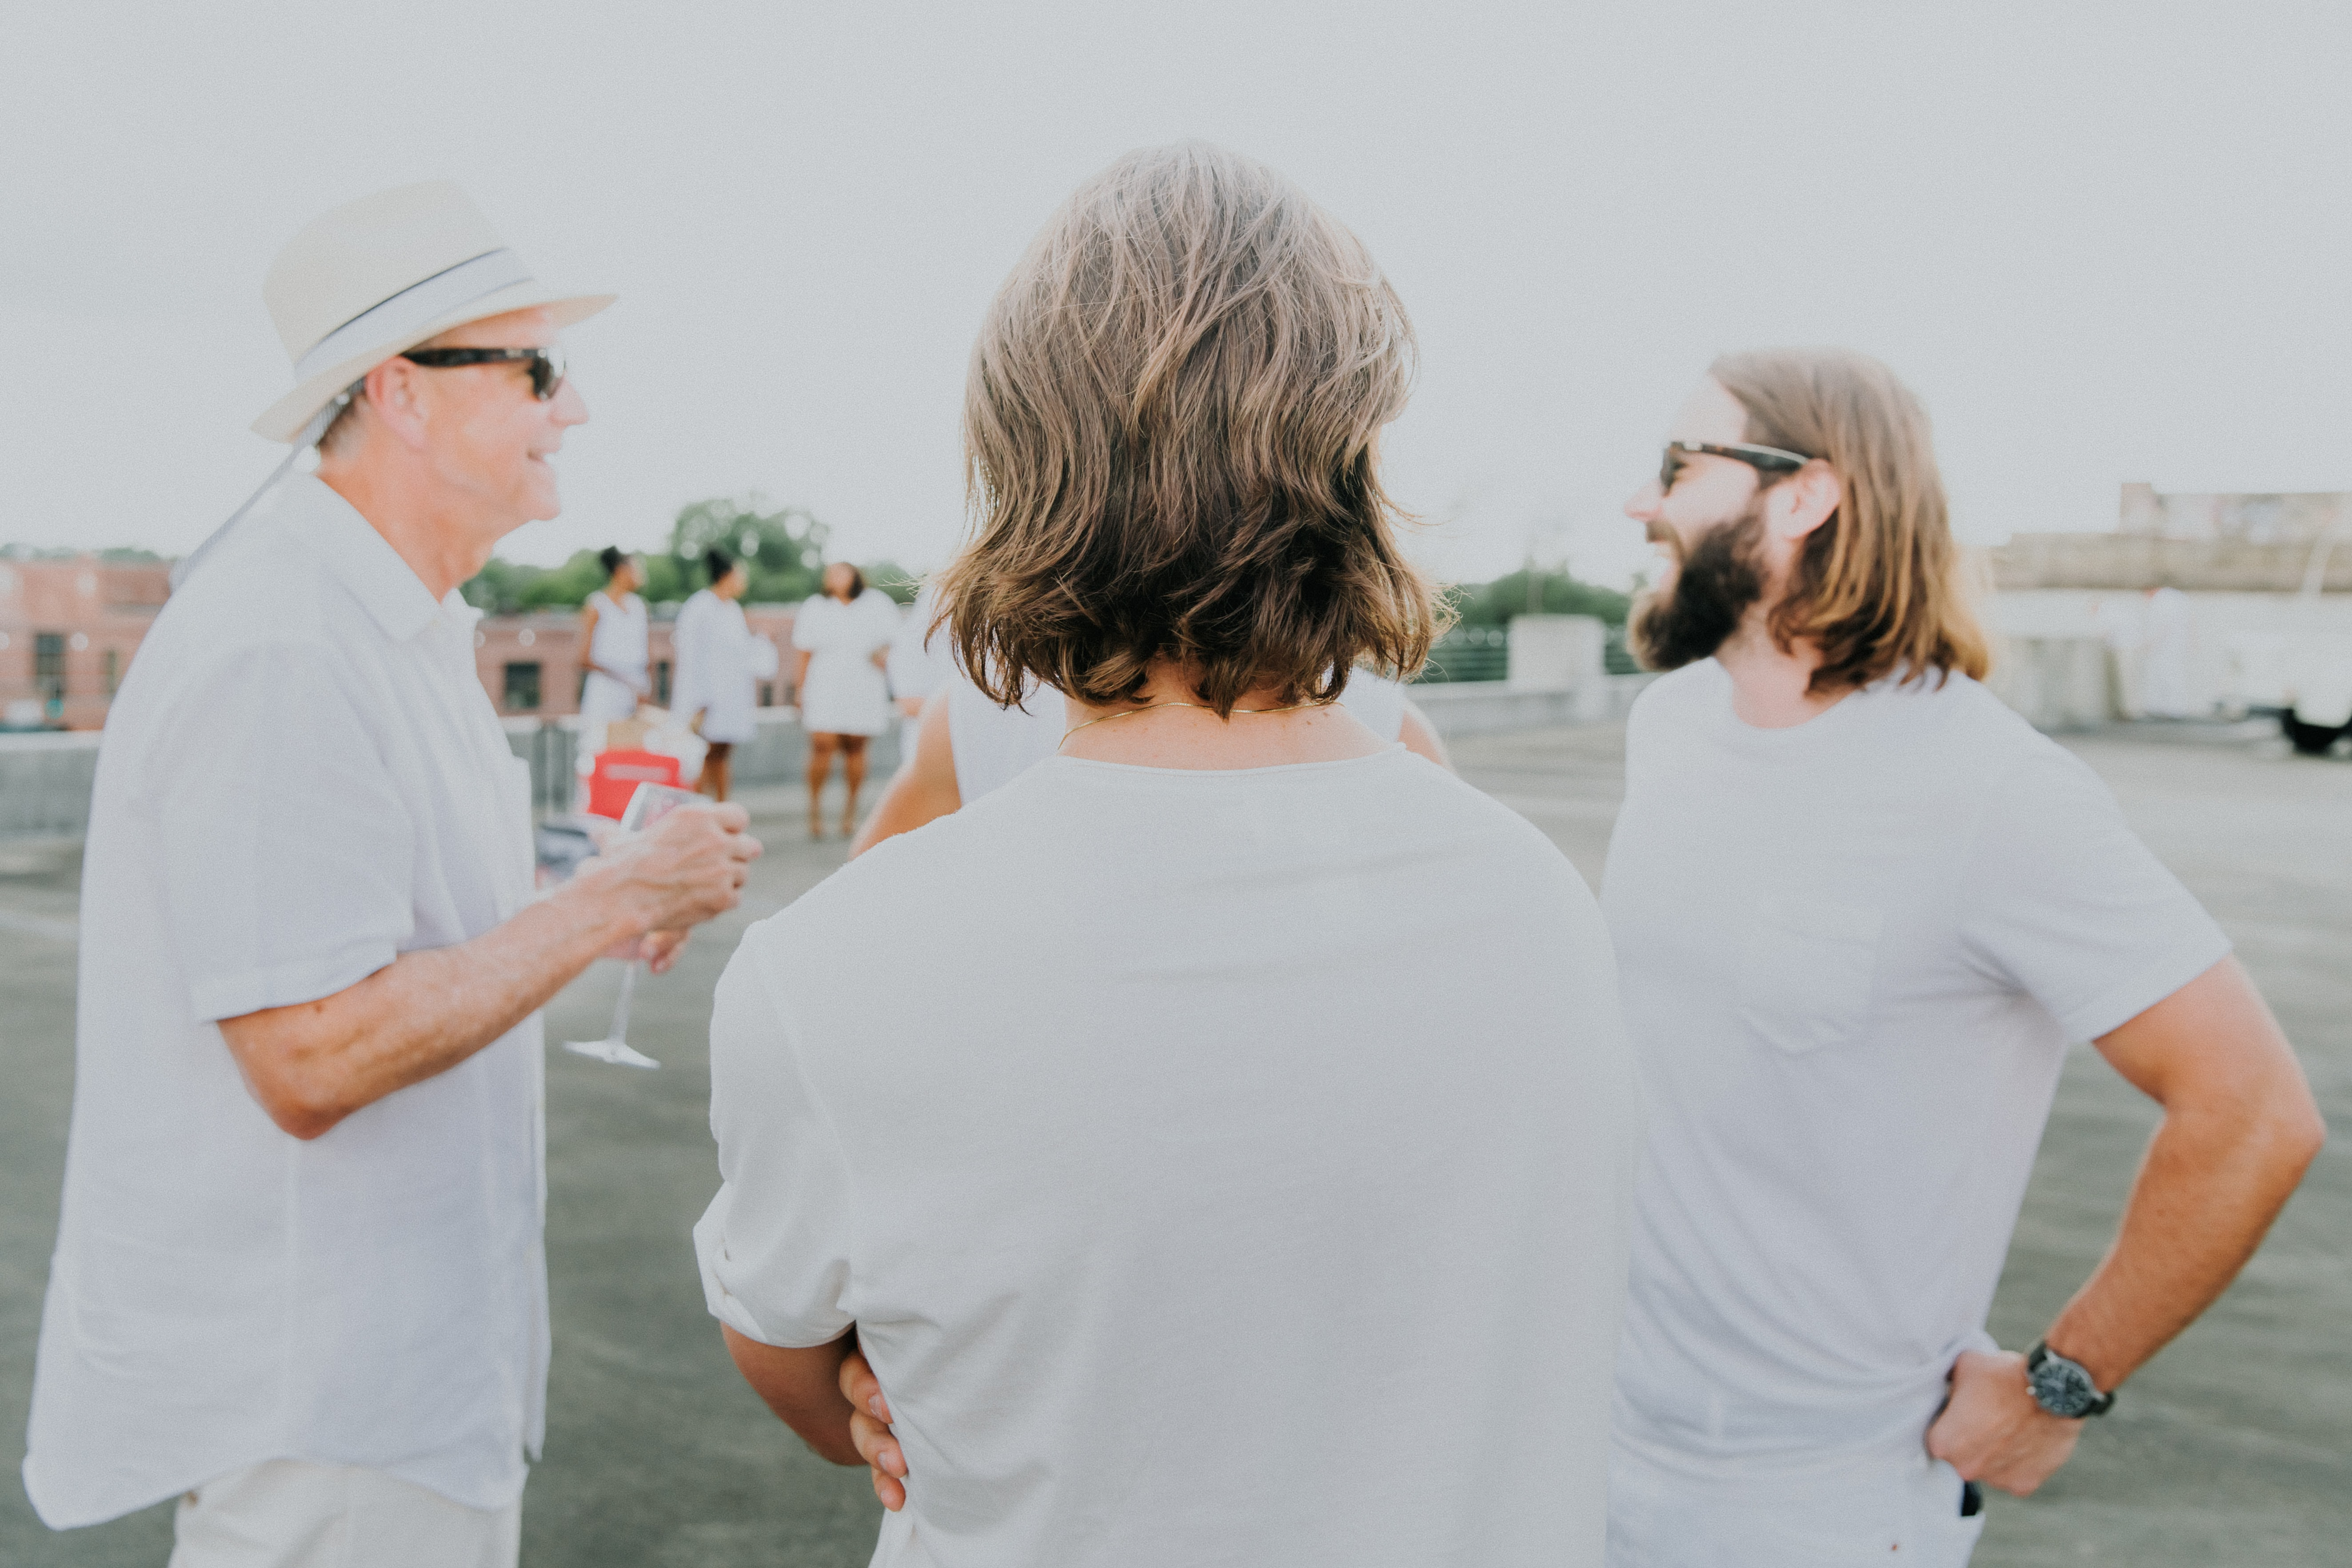 men wearing white shirt standing during daytime